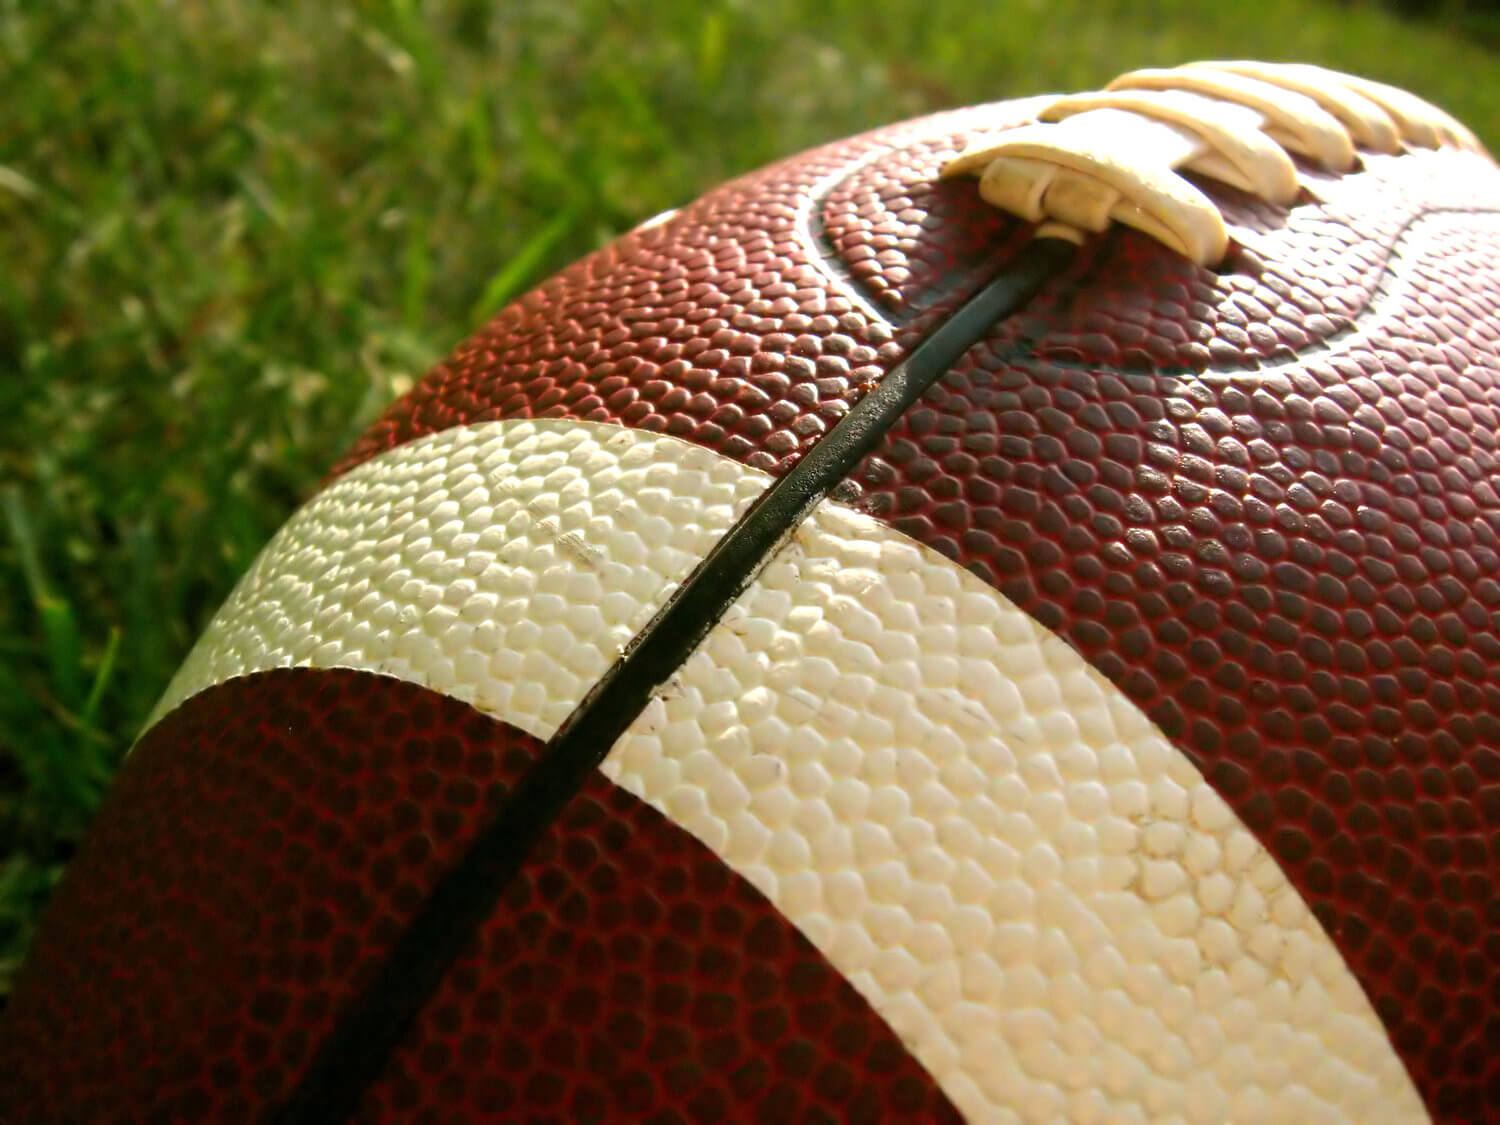 Former Idaho Student Files NCAA Concussion Injury Suit